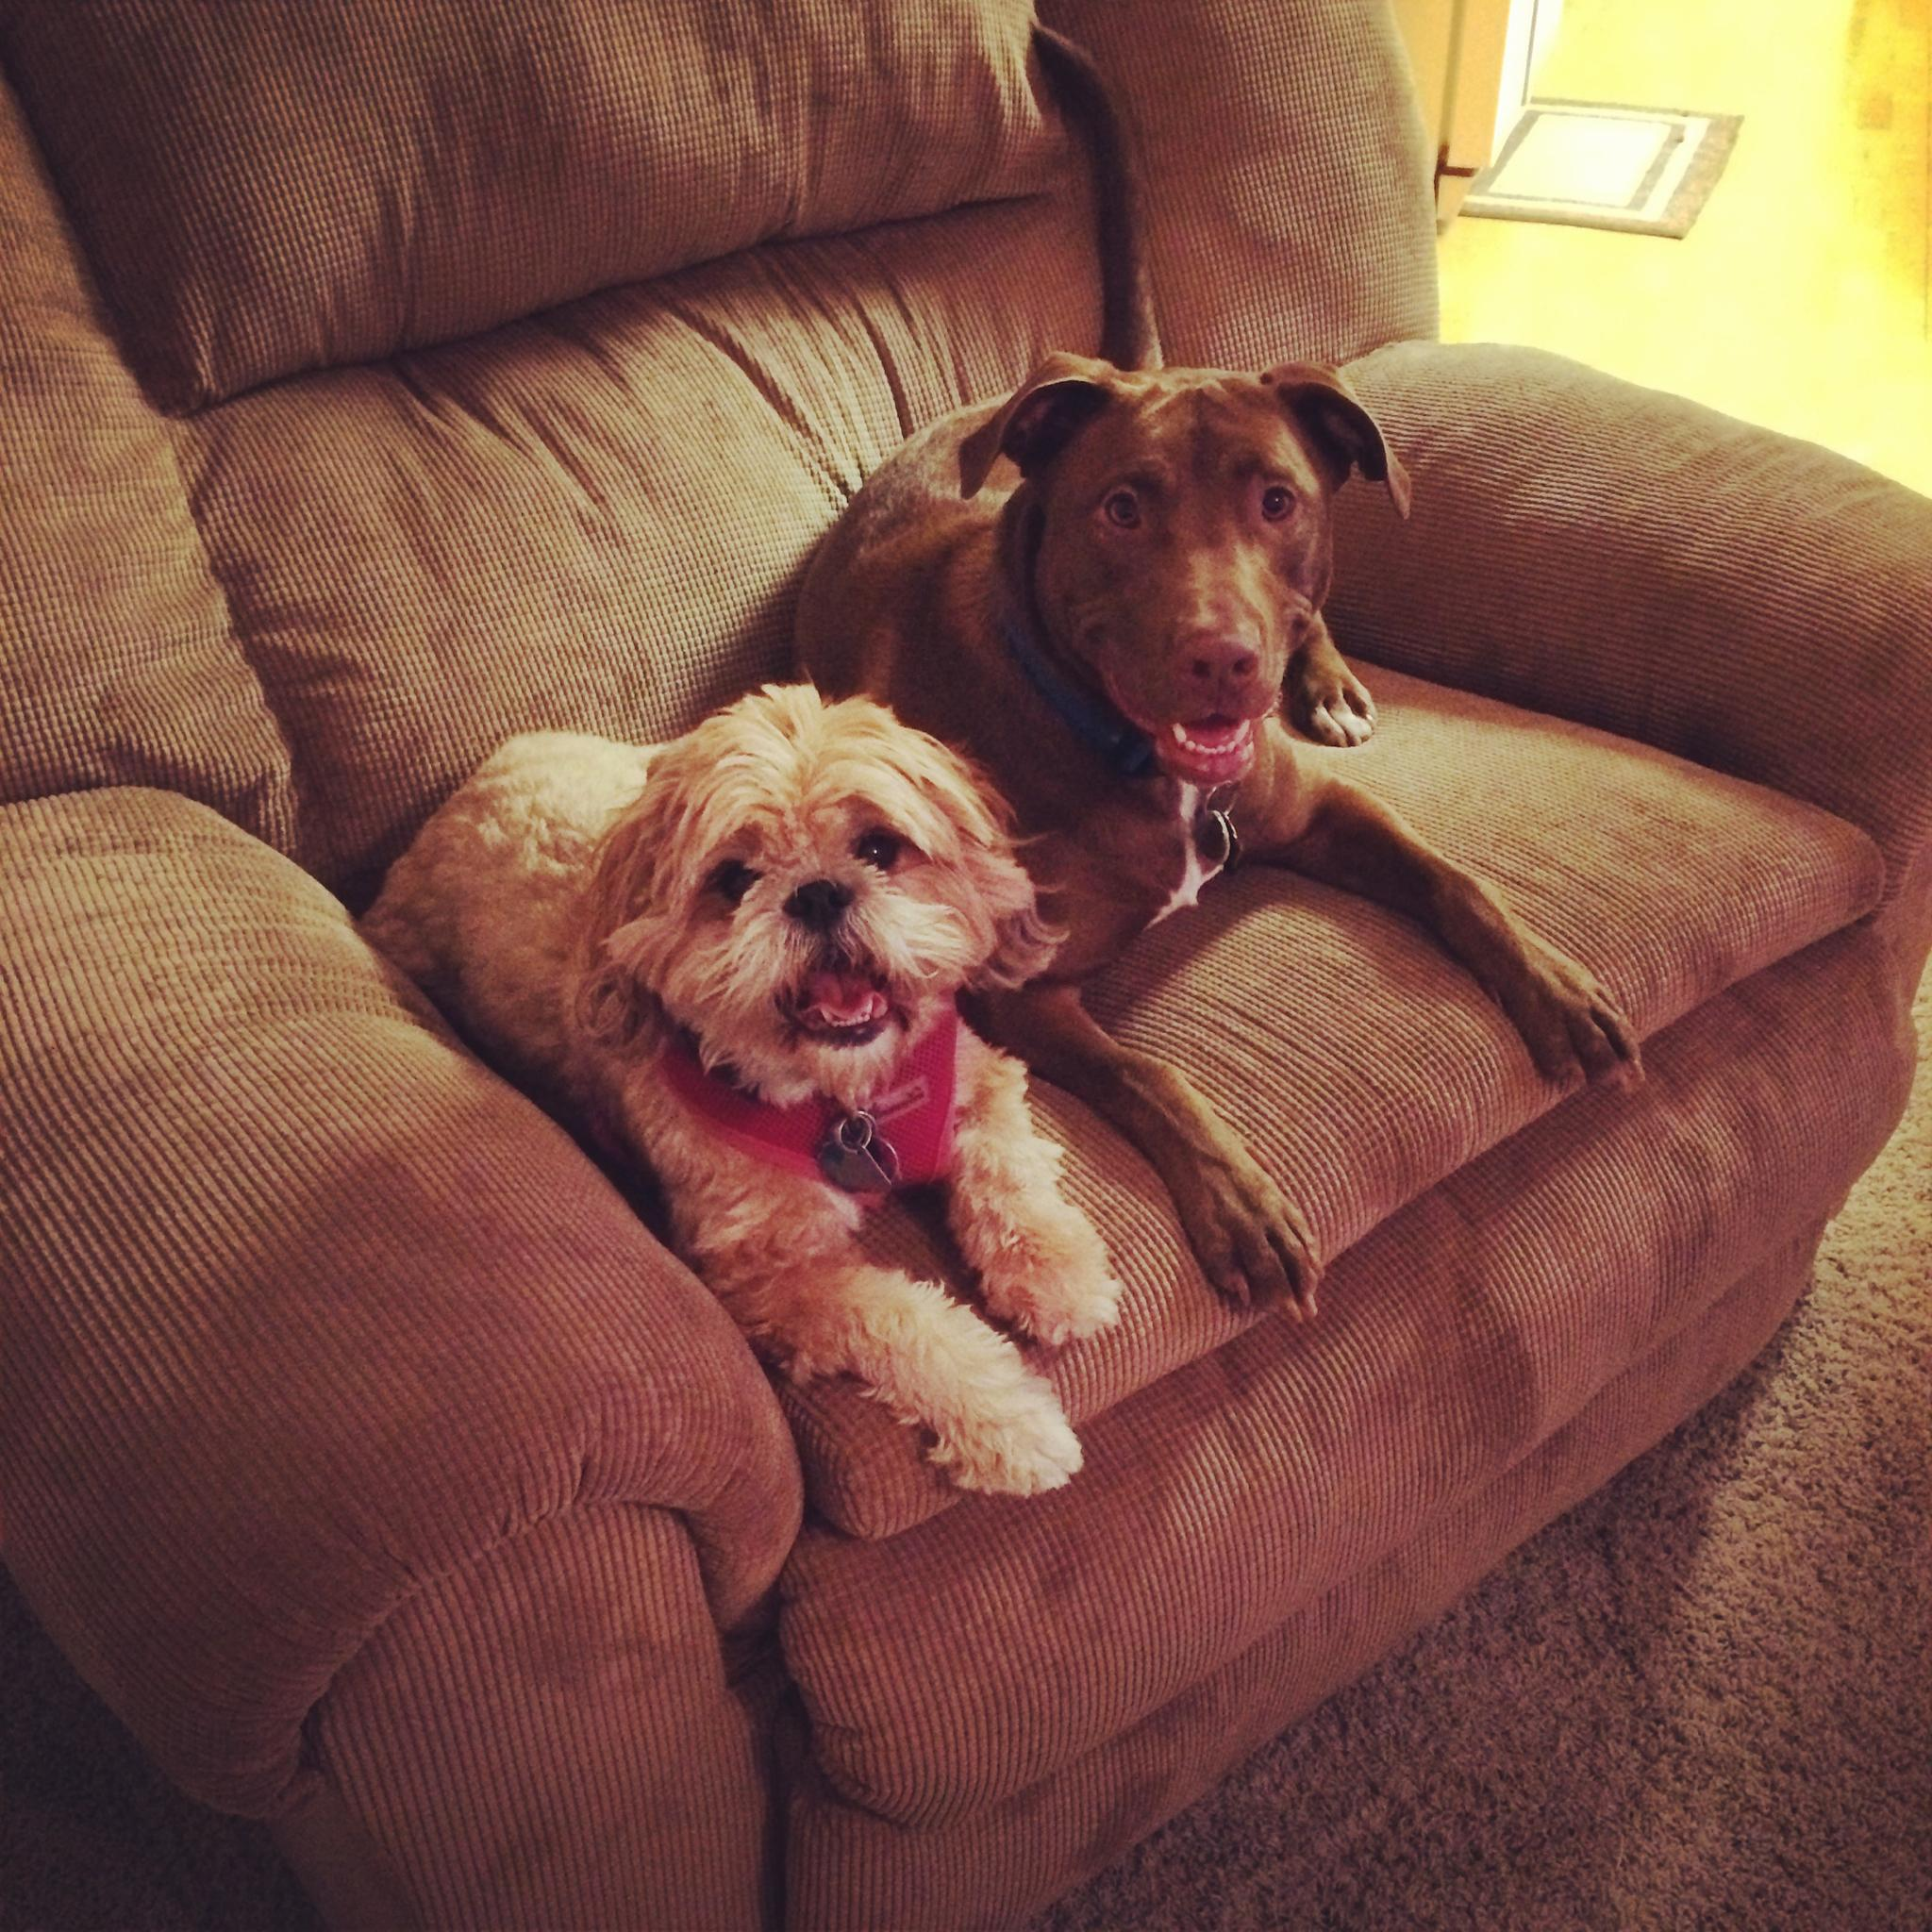 John and Allie's dogs: Meriwether and Diesel